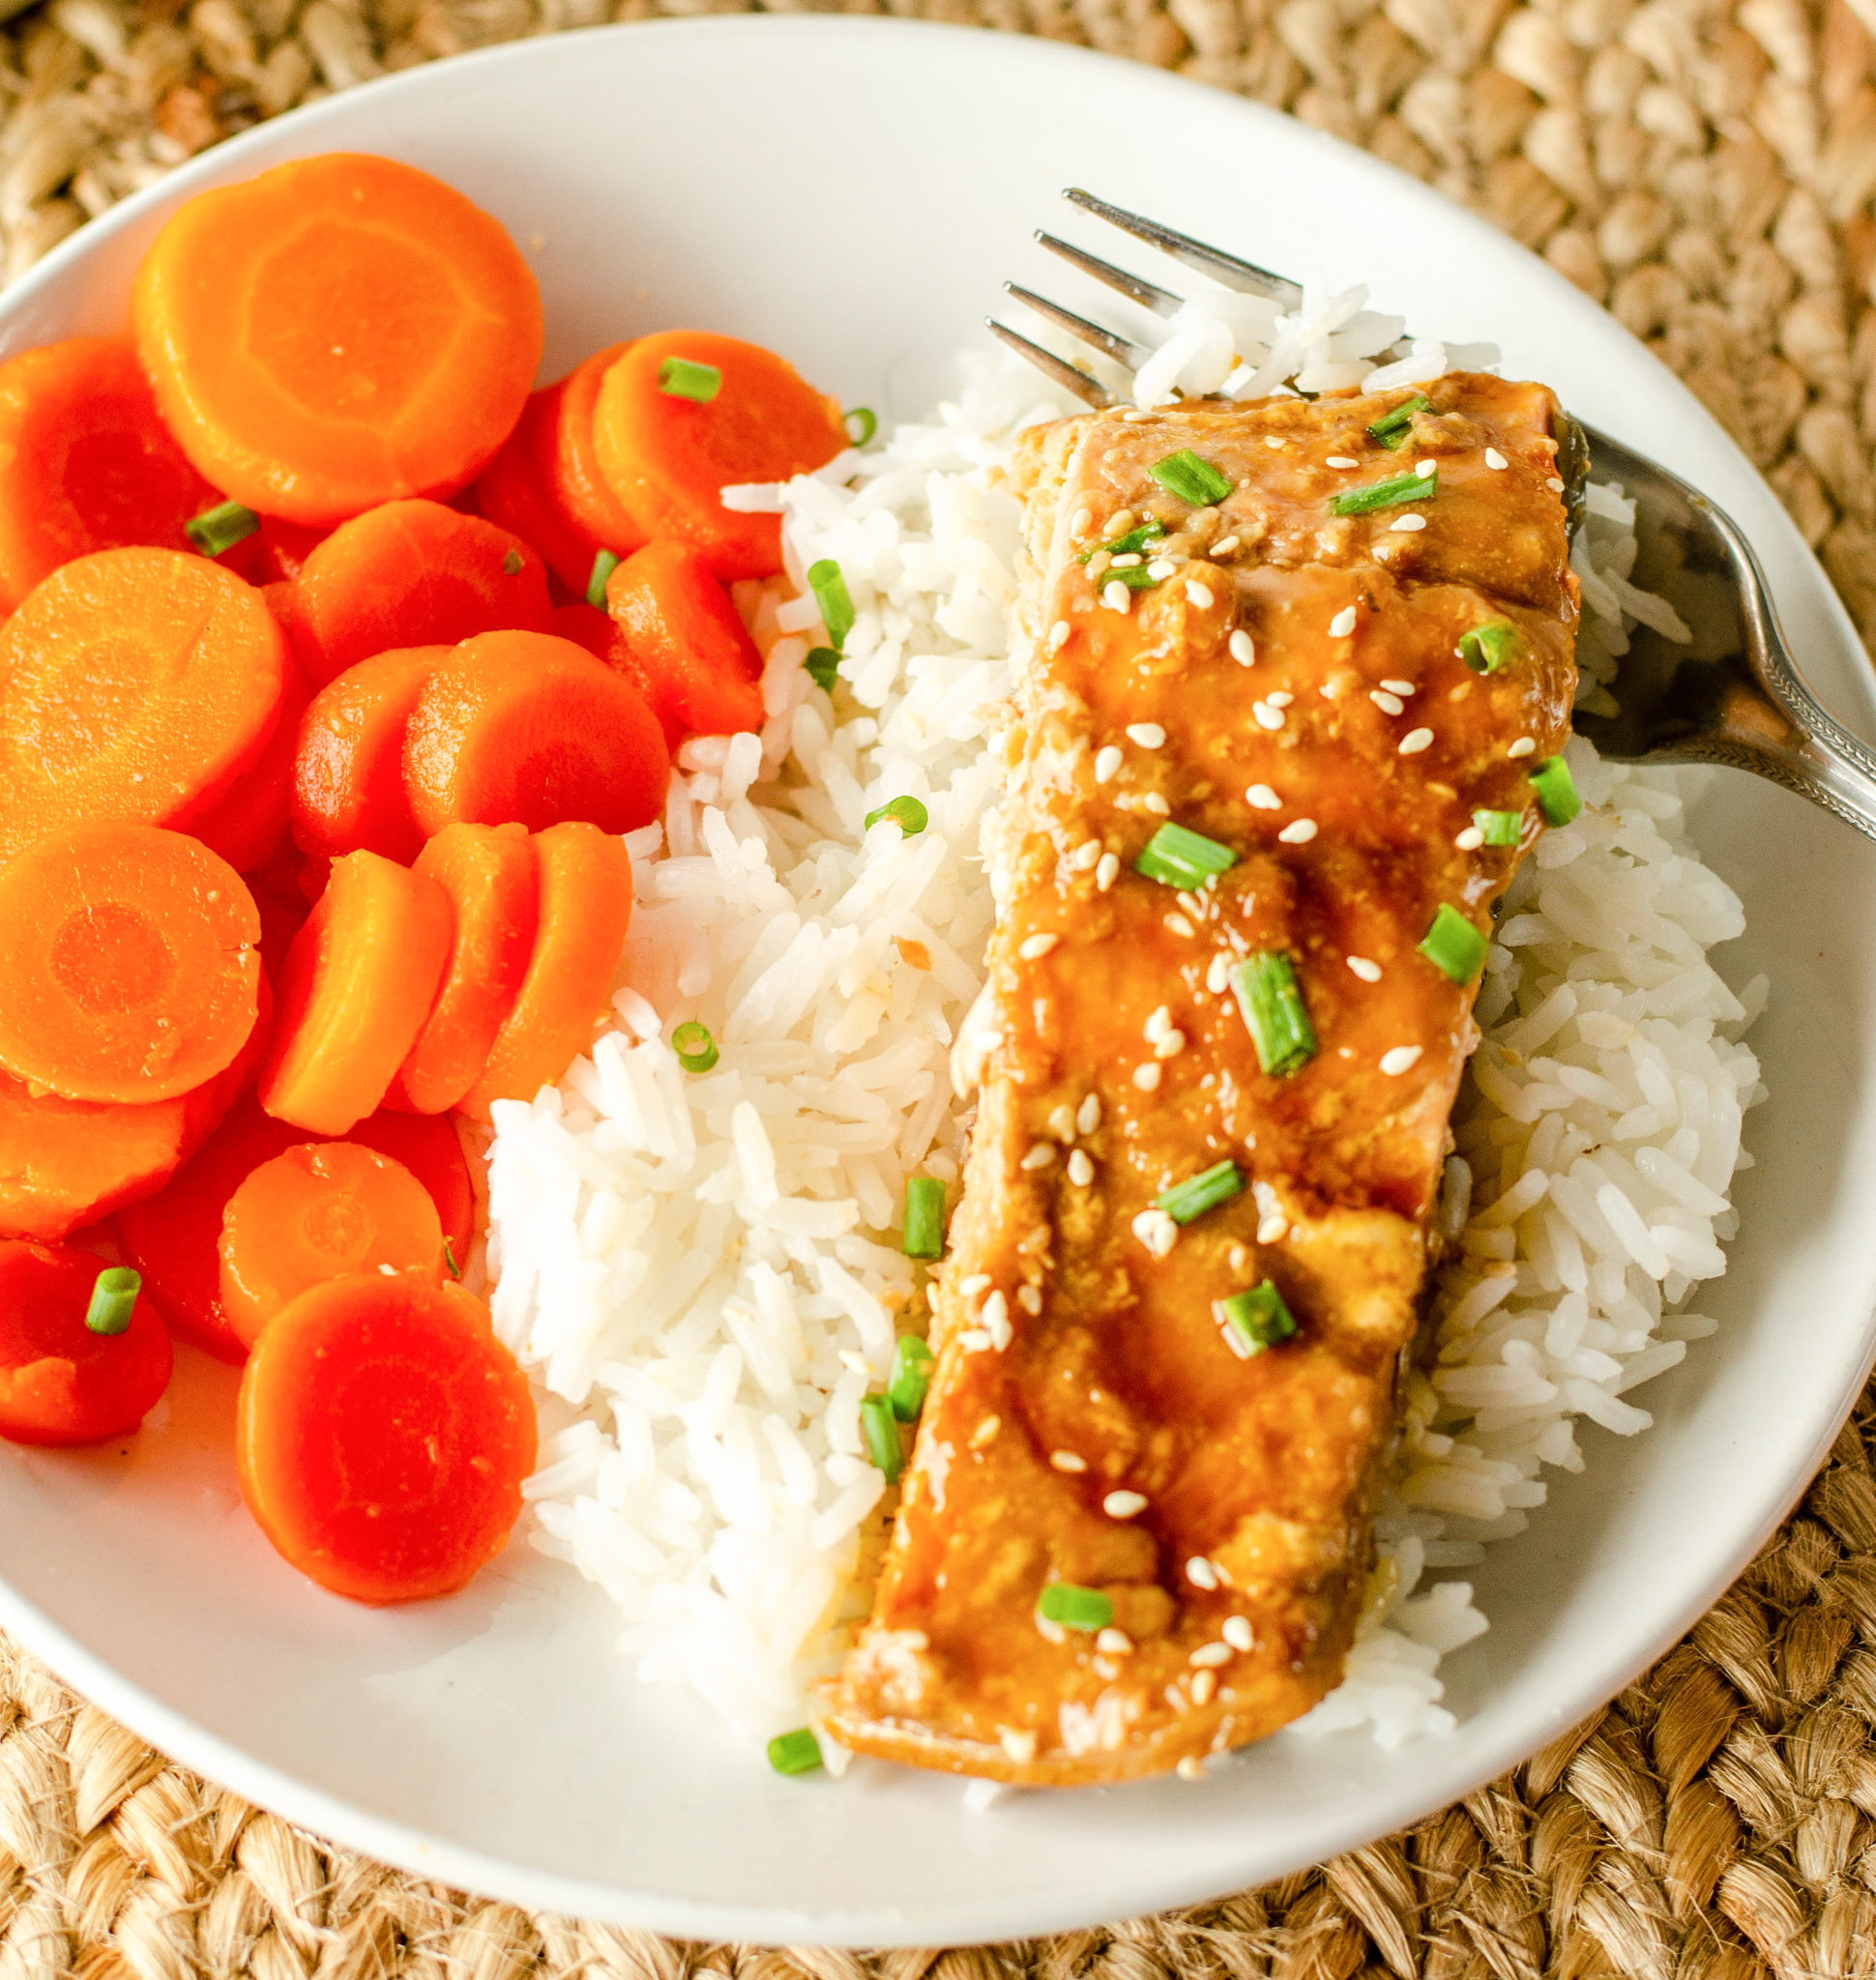 Teryaki Salmon Recipe with carrots